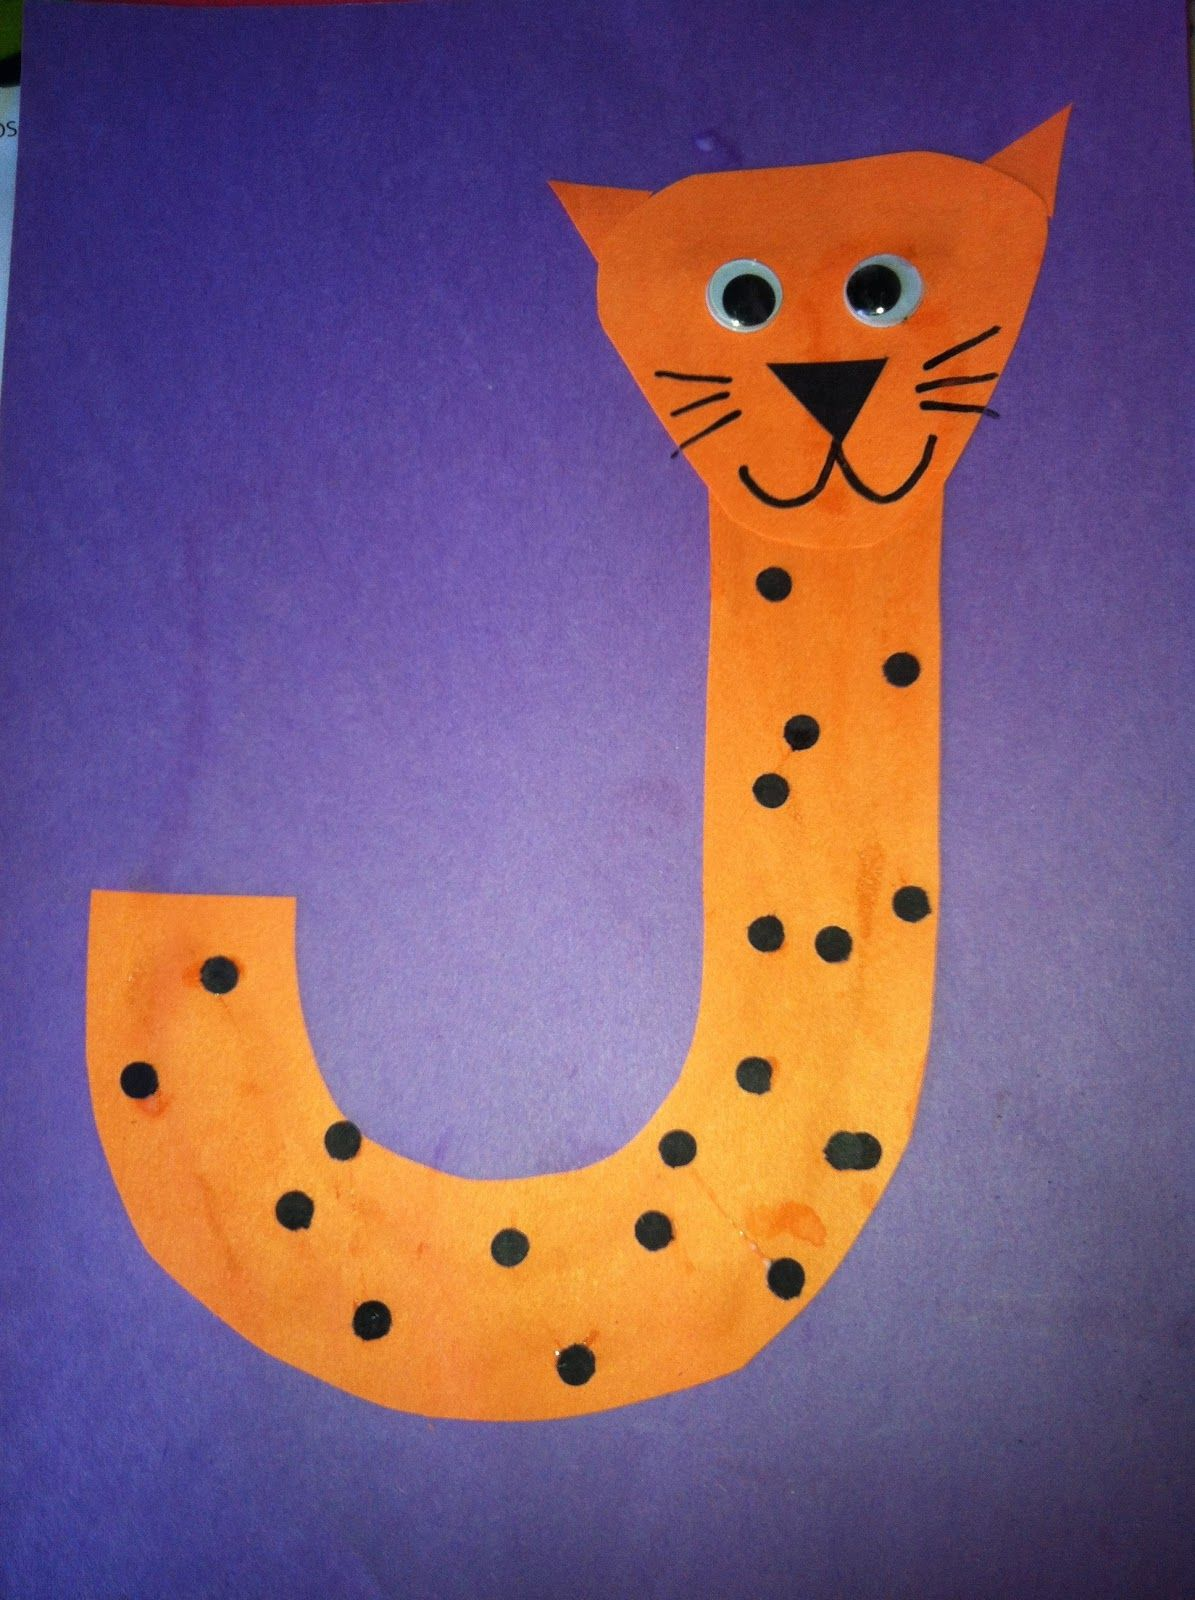 Letter s arts and crafts for preschoolers - Miss Maren S Monkeys Preschool Jaguar Template Letters Kindergarten Preschool Alphabet Craft